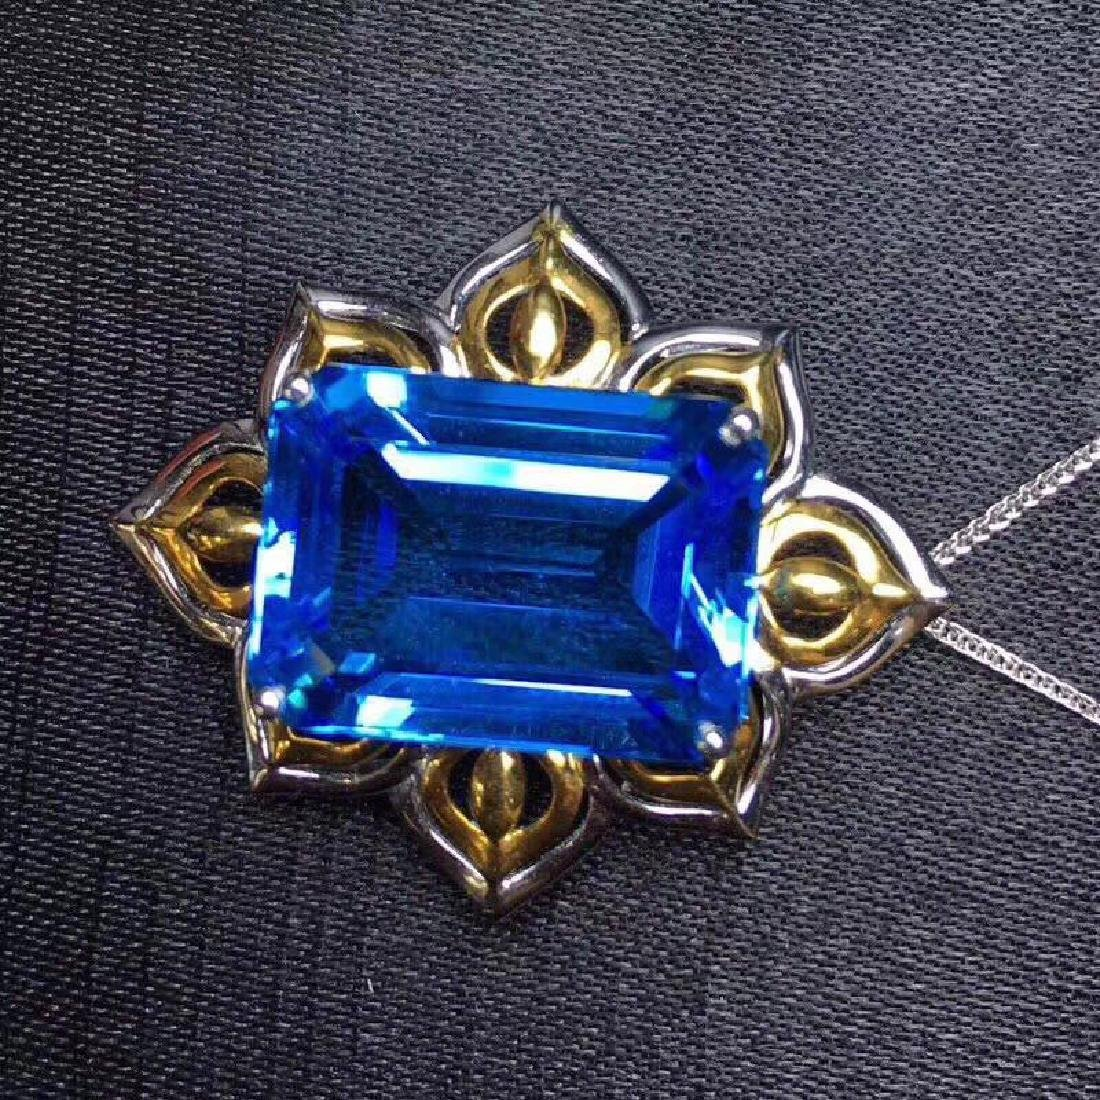 20.90 CTW Topaz & VS Diamond Pendant 18K - 7